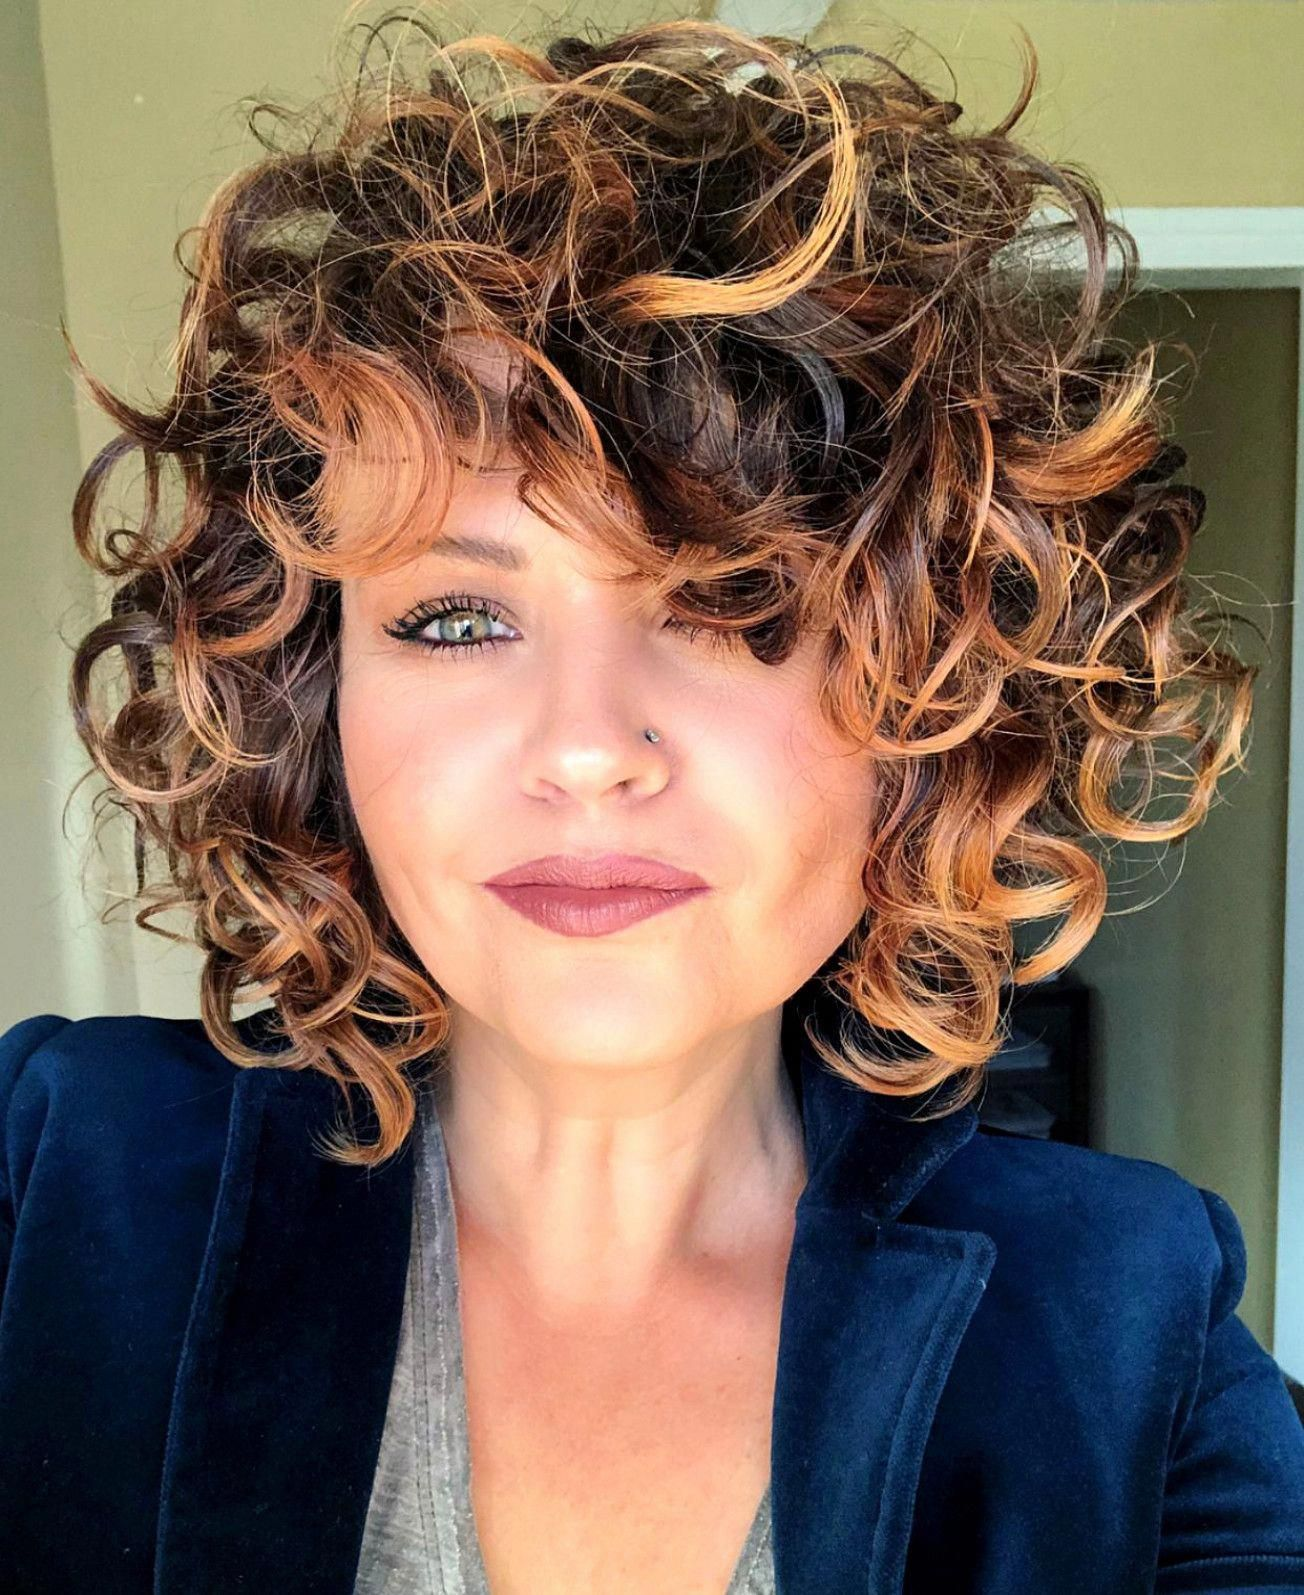 These updo bob hairstyles are fabulous #updobobhairstyles | Short curly hair, Curly hair styles ...